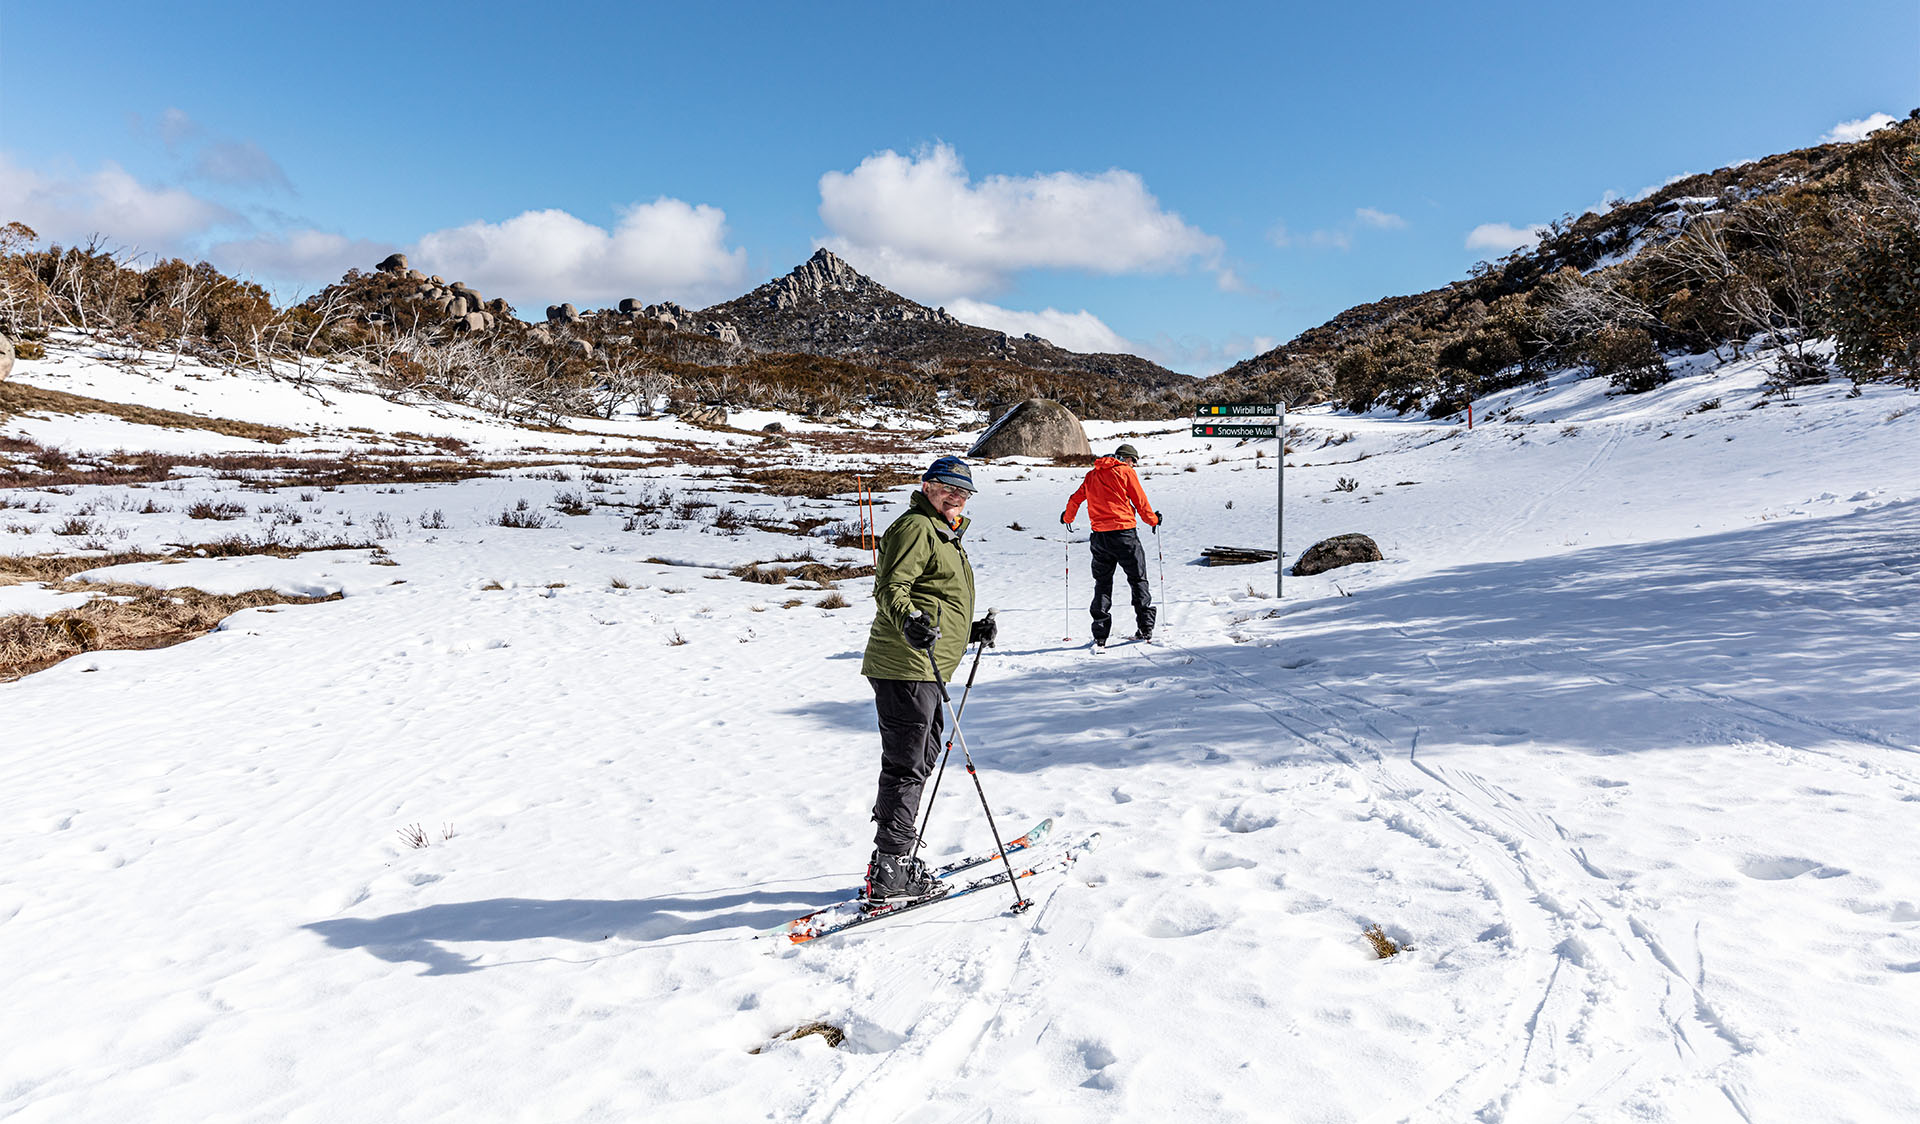 Two people cross country skiing at Cresta Valley in Mount Buffalo National Park.